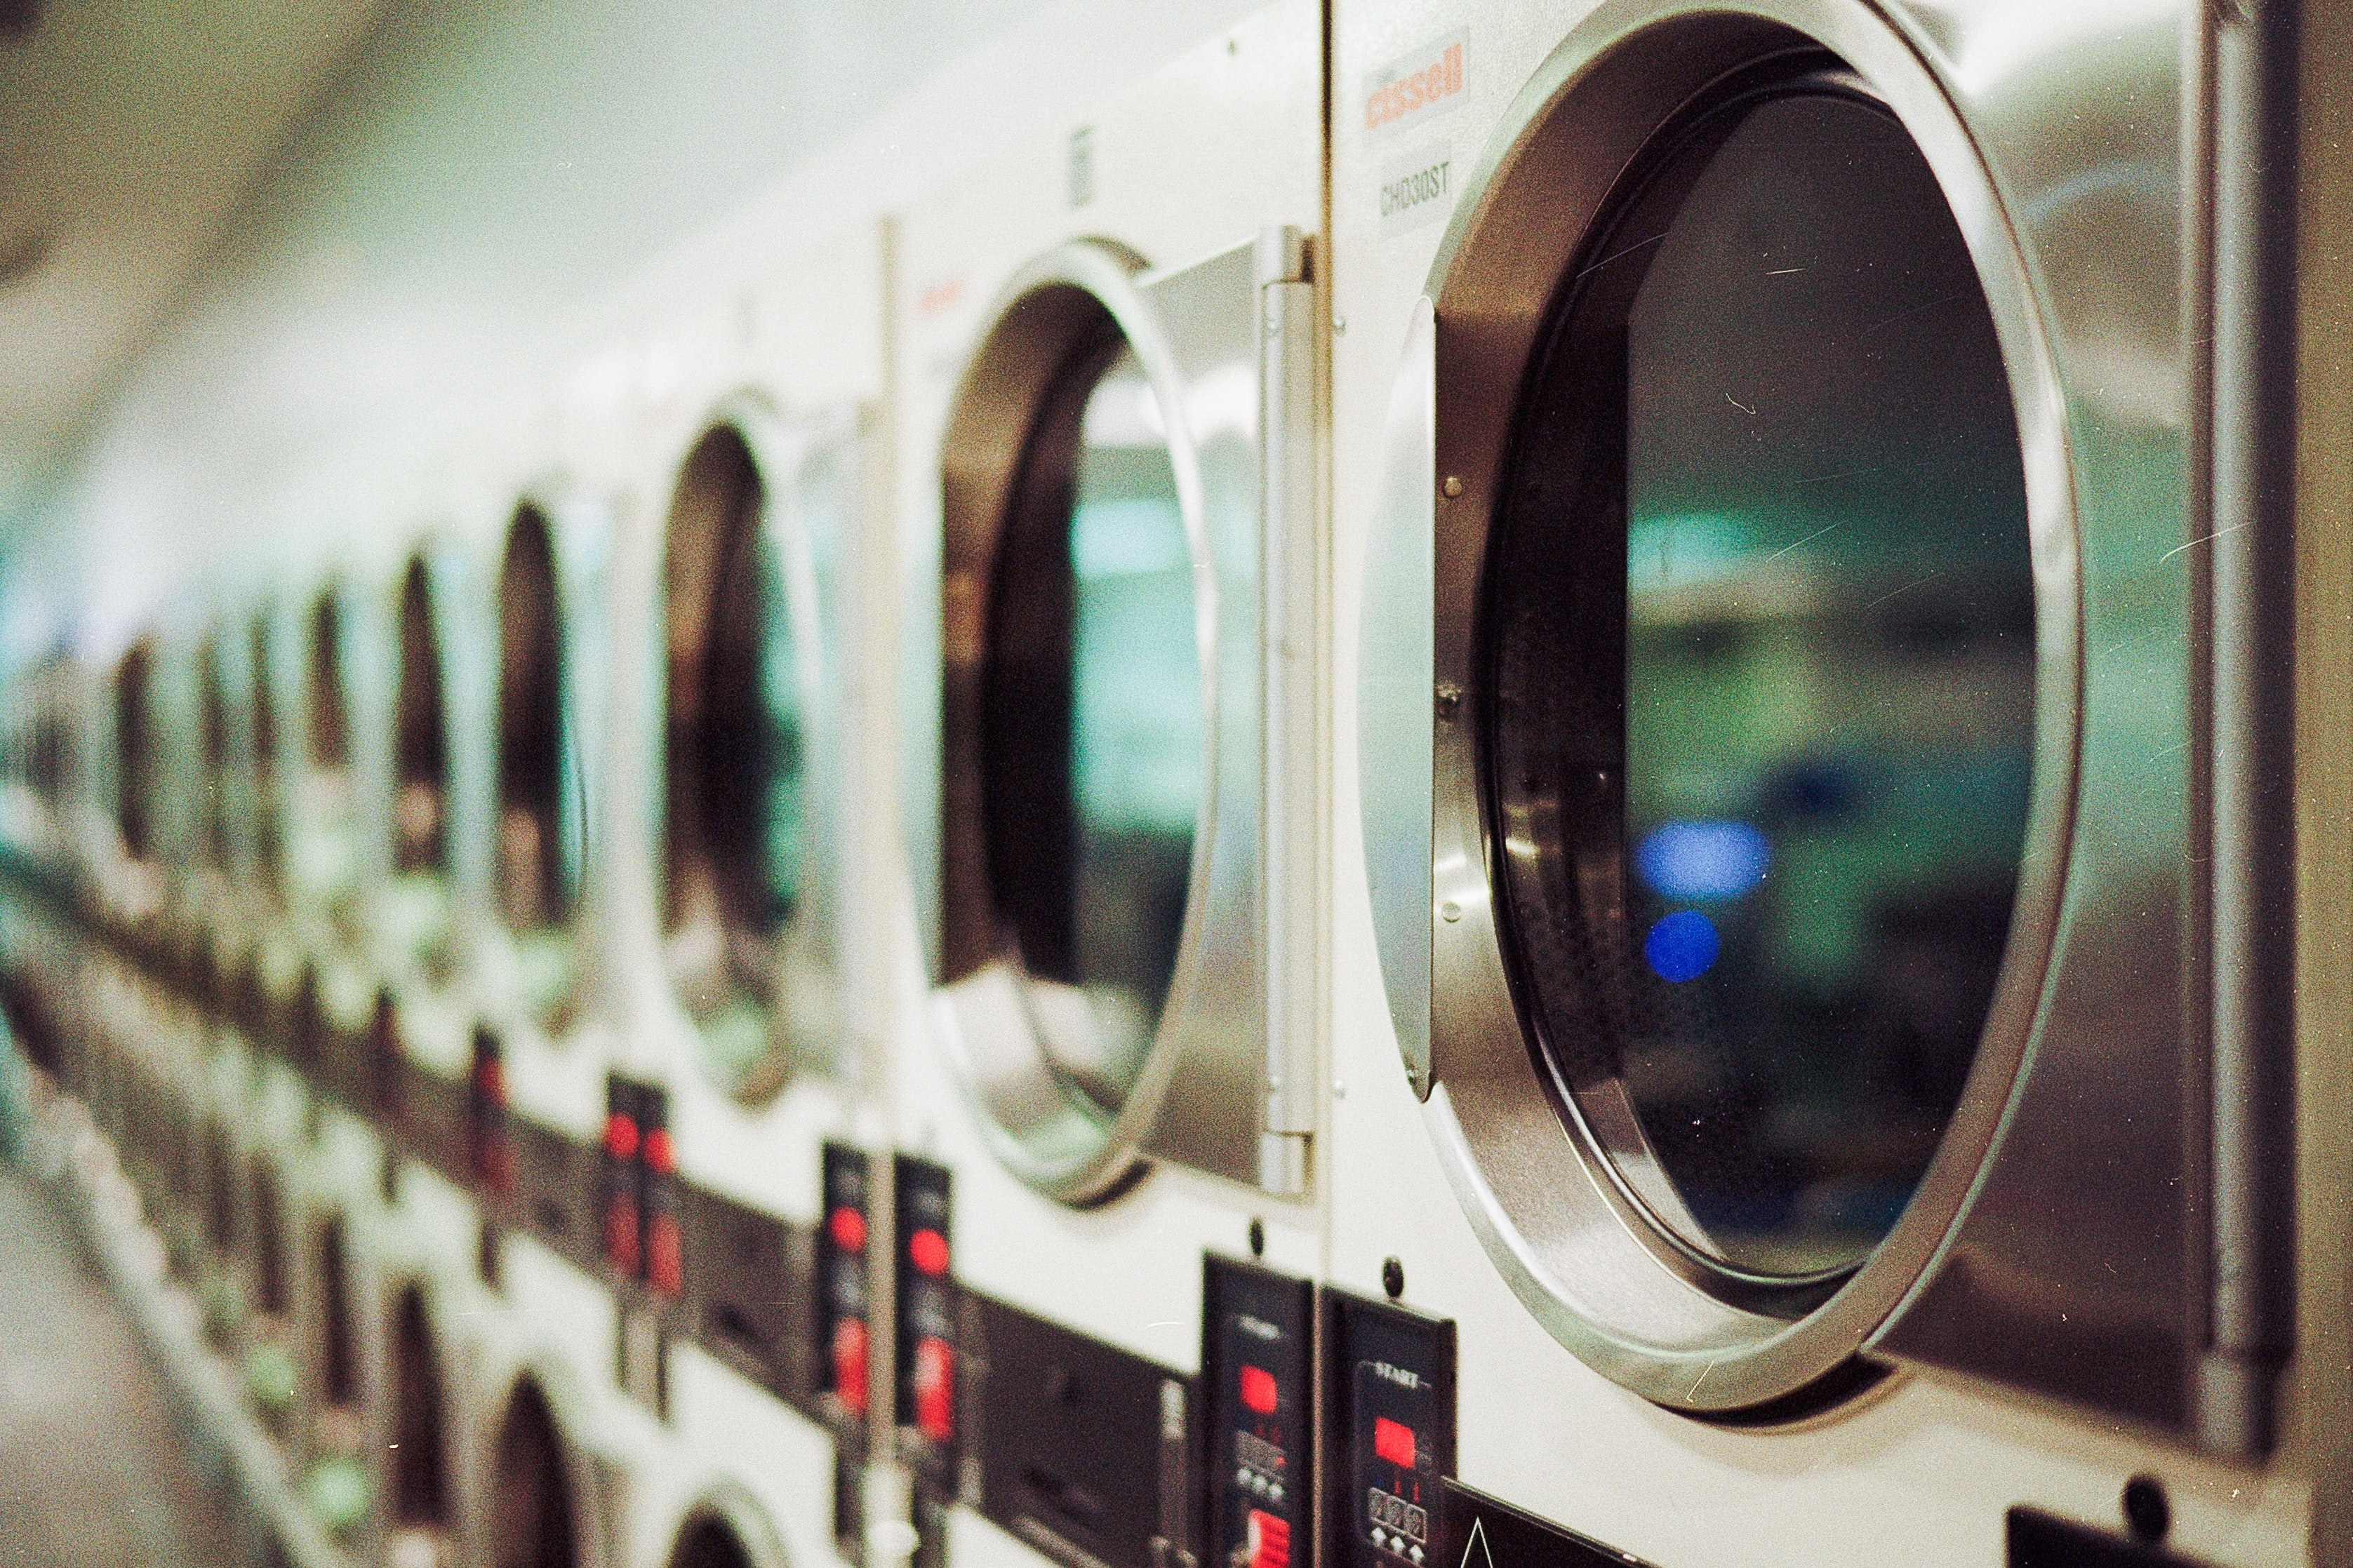 Residential Laundry services